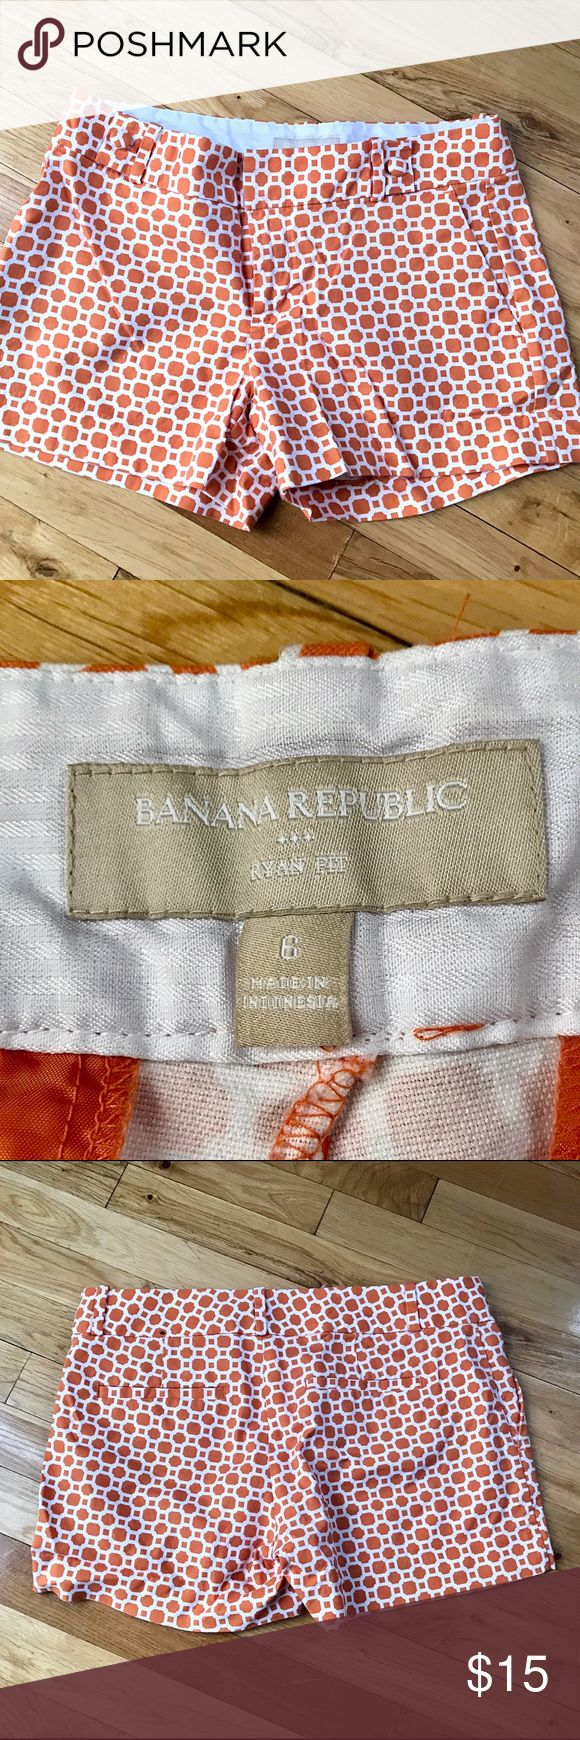 Banana Republic ladies size 6 tailored shorts Banana Republic size ladies 6, Ryan fit, tailored shorts. Two front pockets and to back, belt loops and zip front. Worn 2 times. Like new condition. 3.5 in inseam Banana Republic Shorts